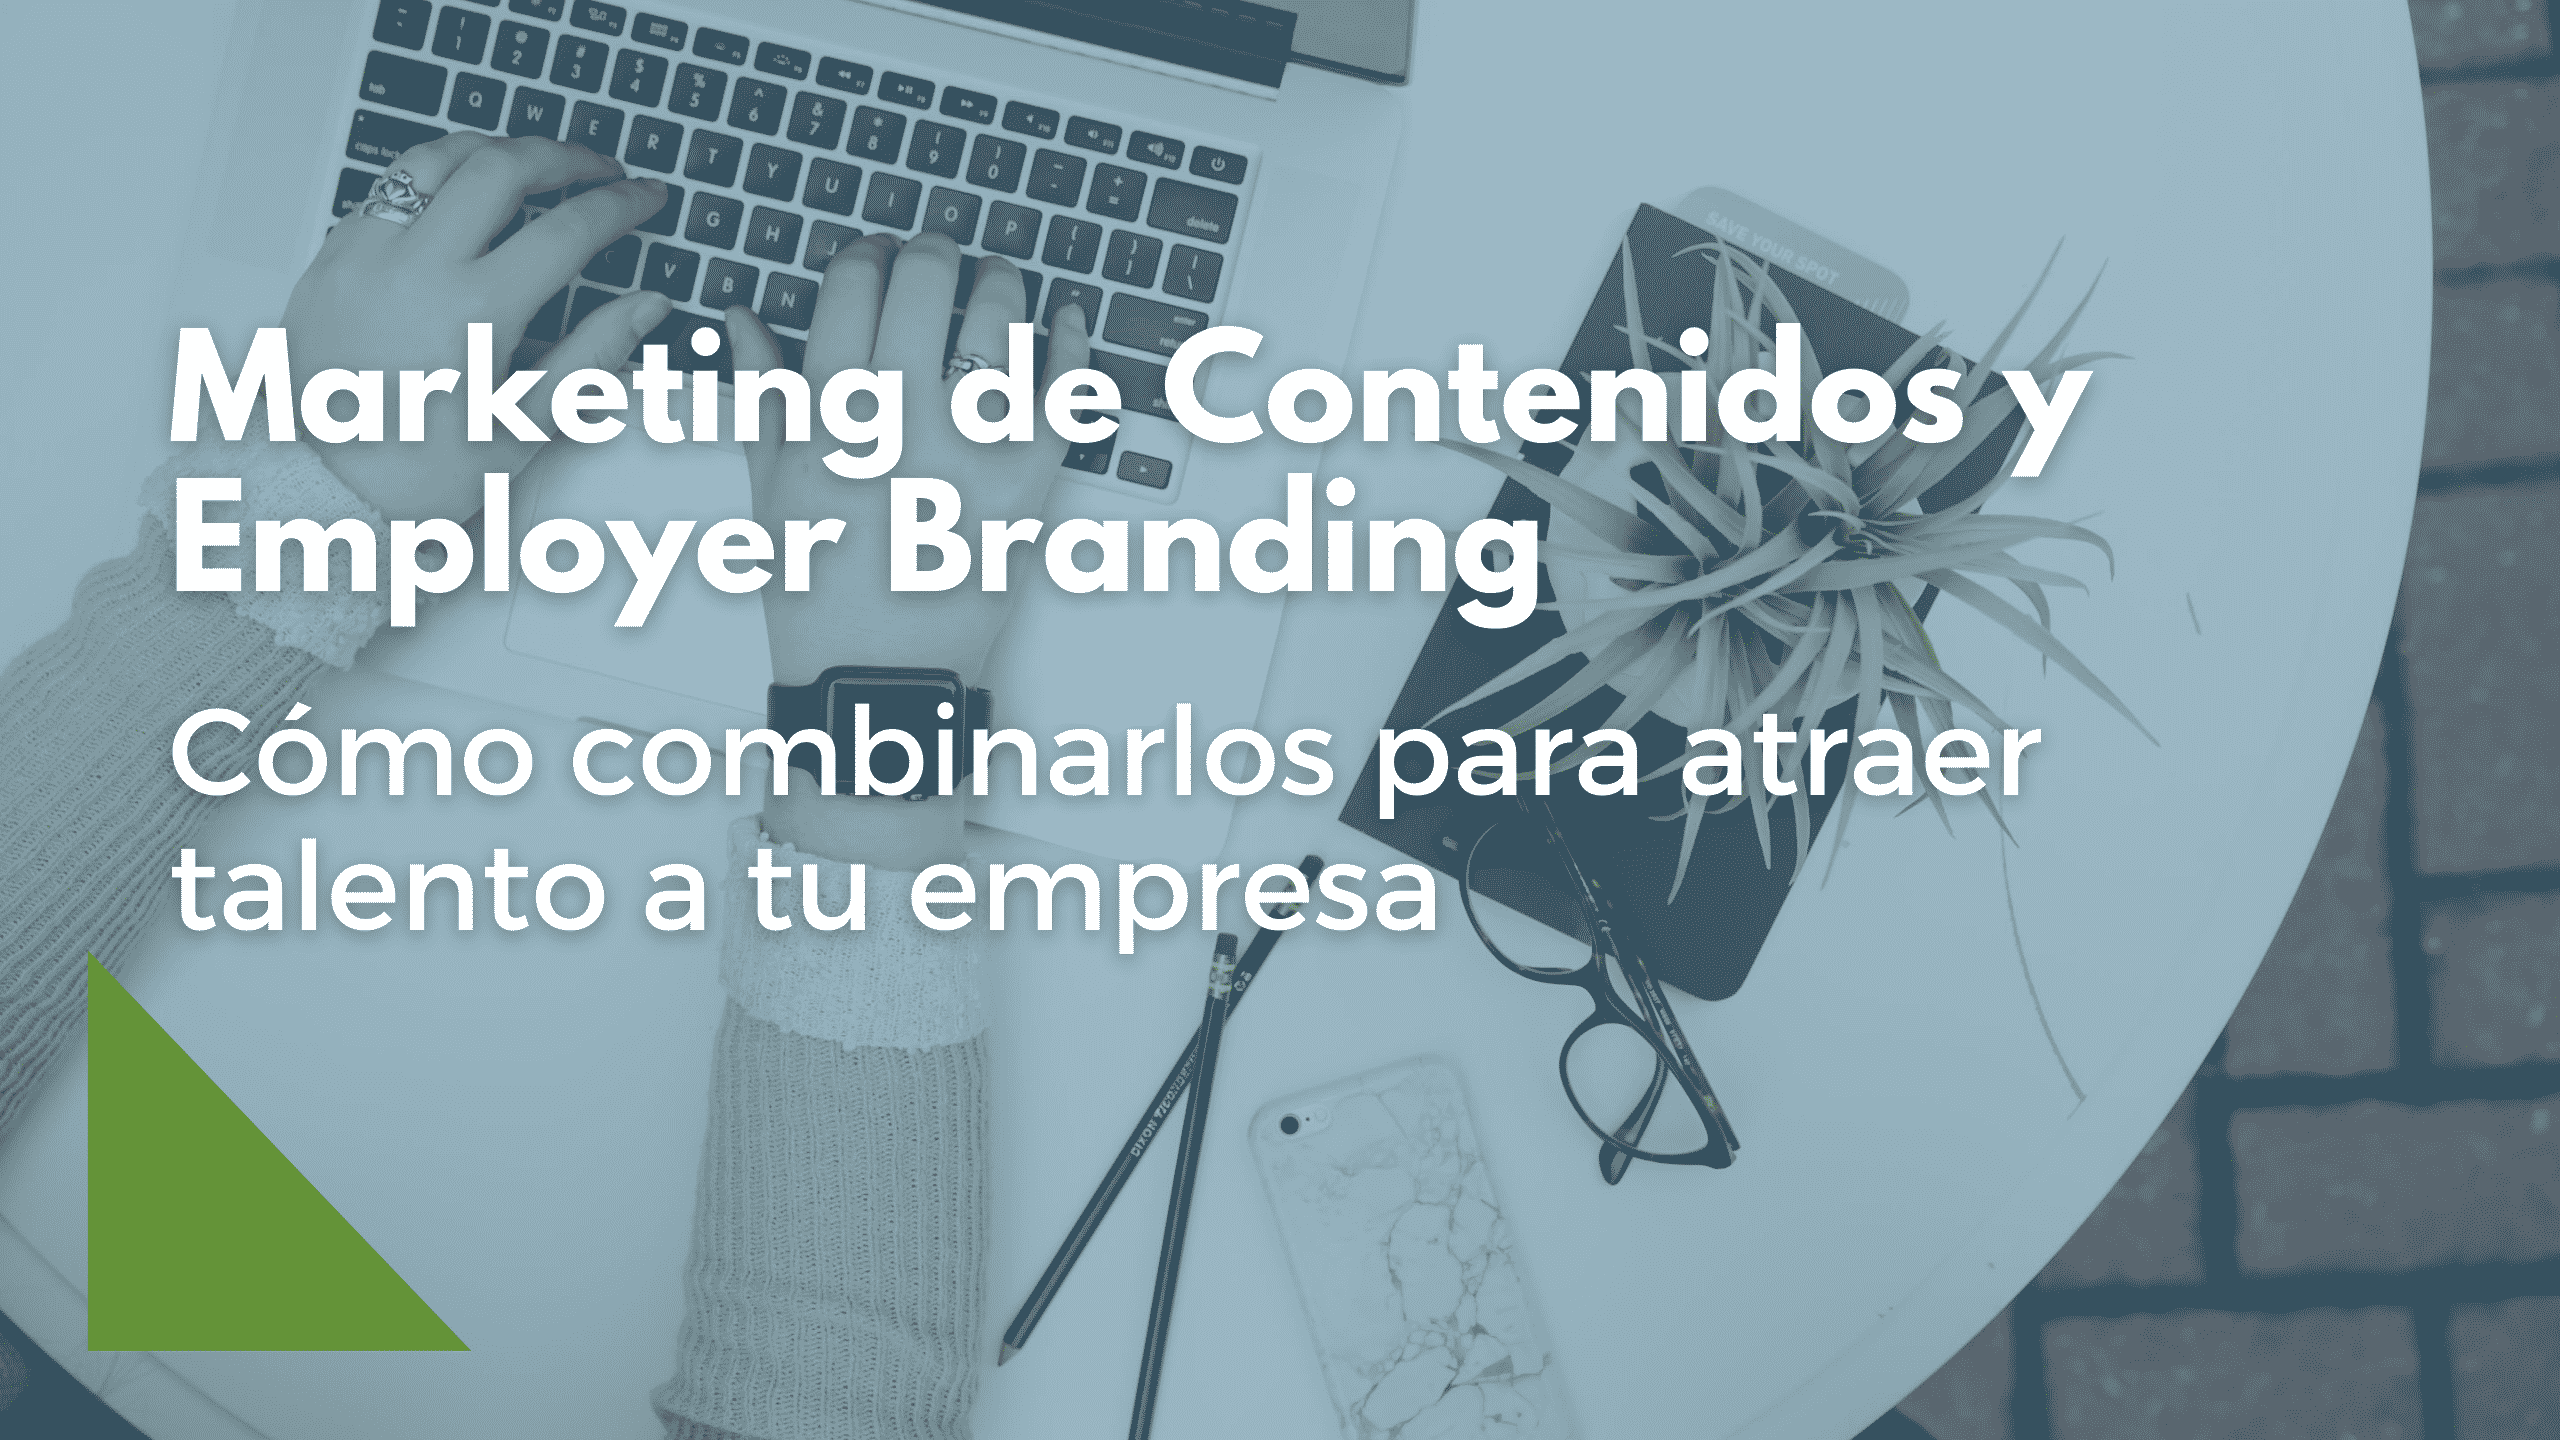 Marketing de Contenidos y Employer Branding